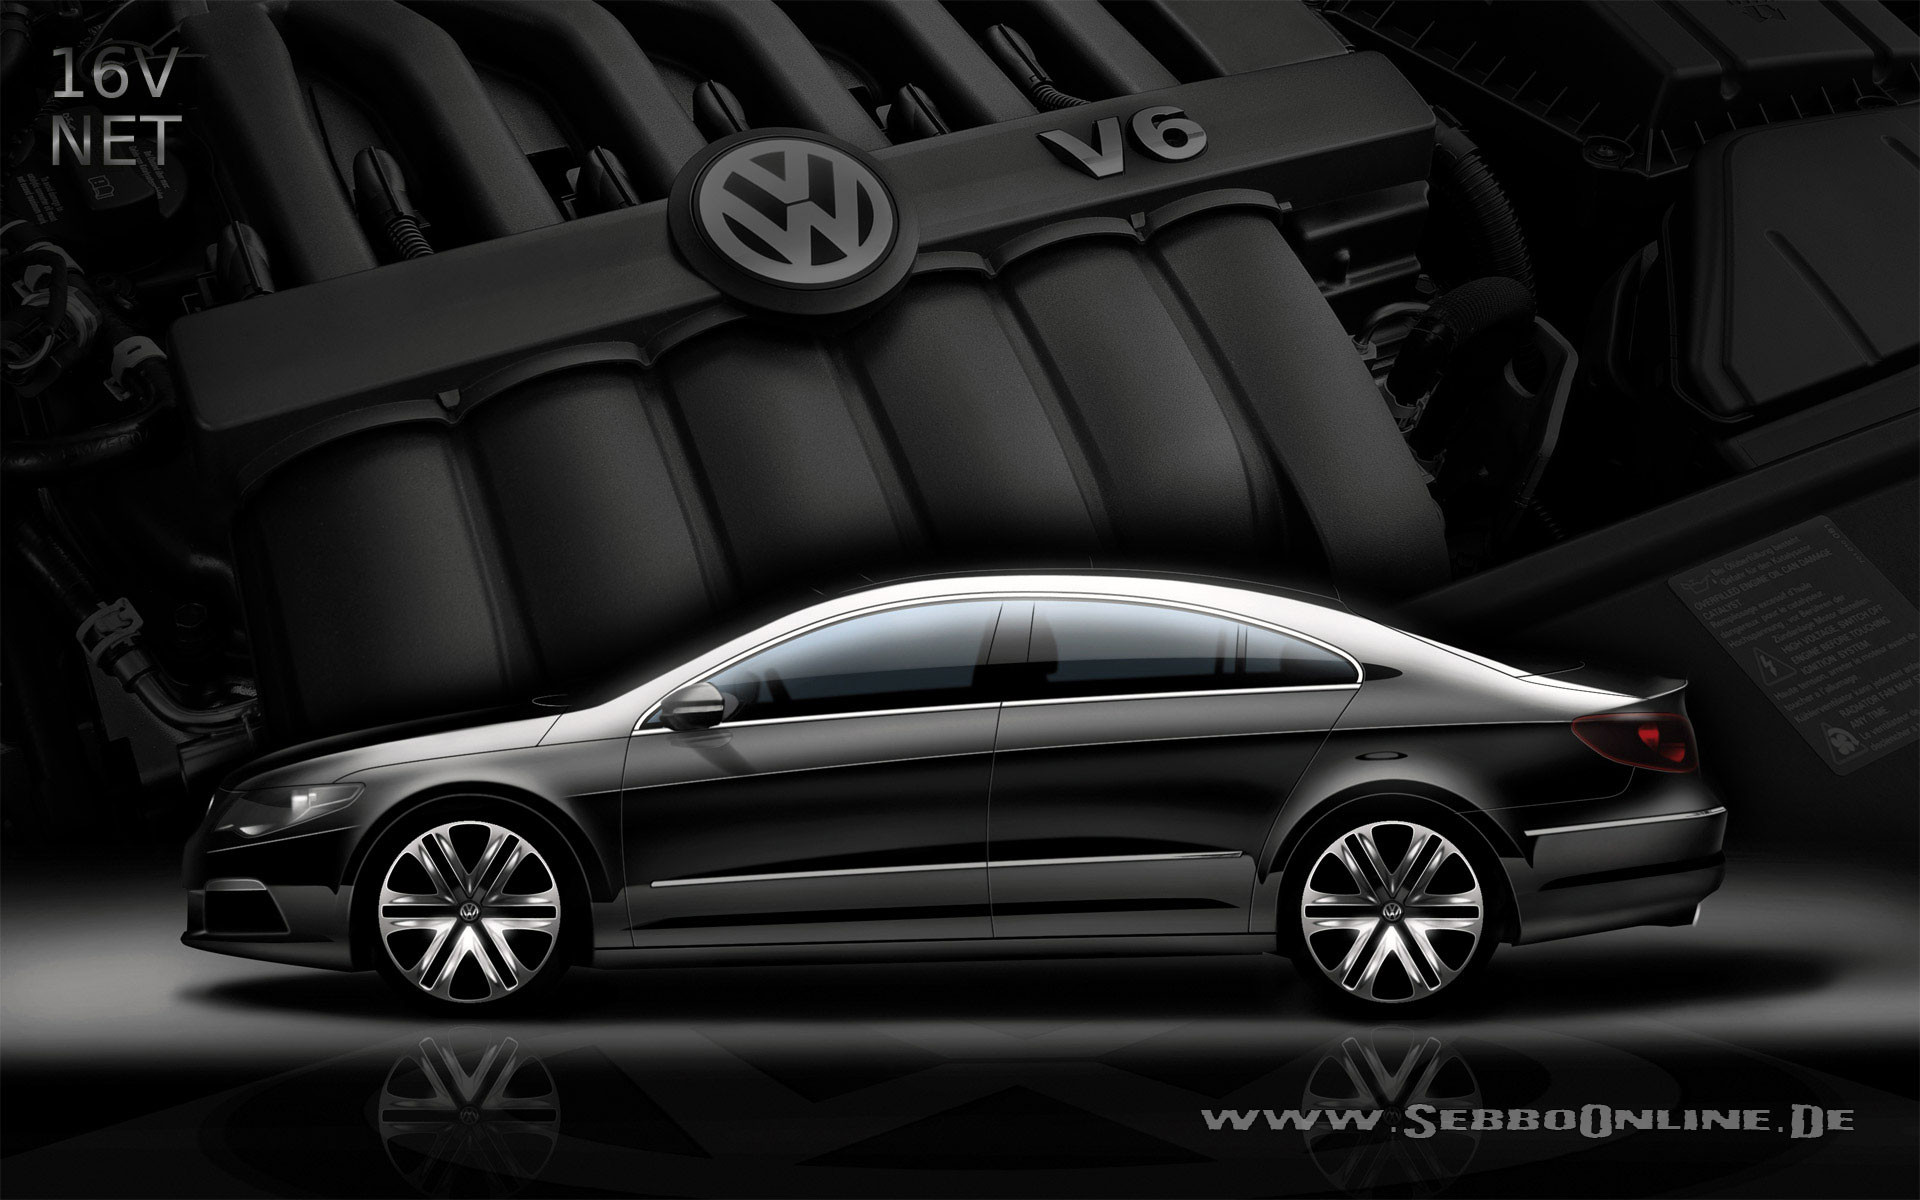 Res: 1920x1200, VW Passat CC V6 Wallpaper